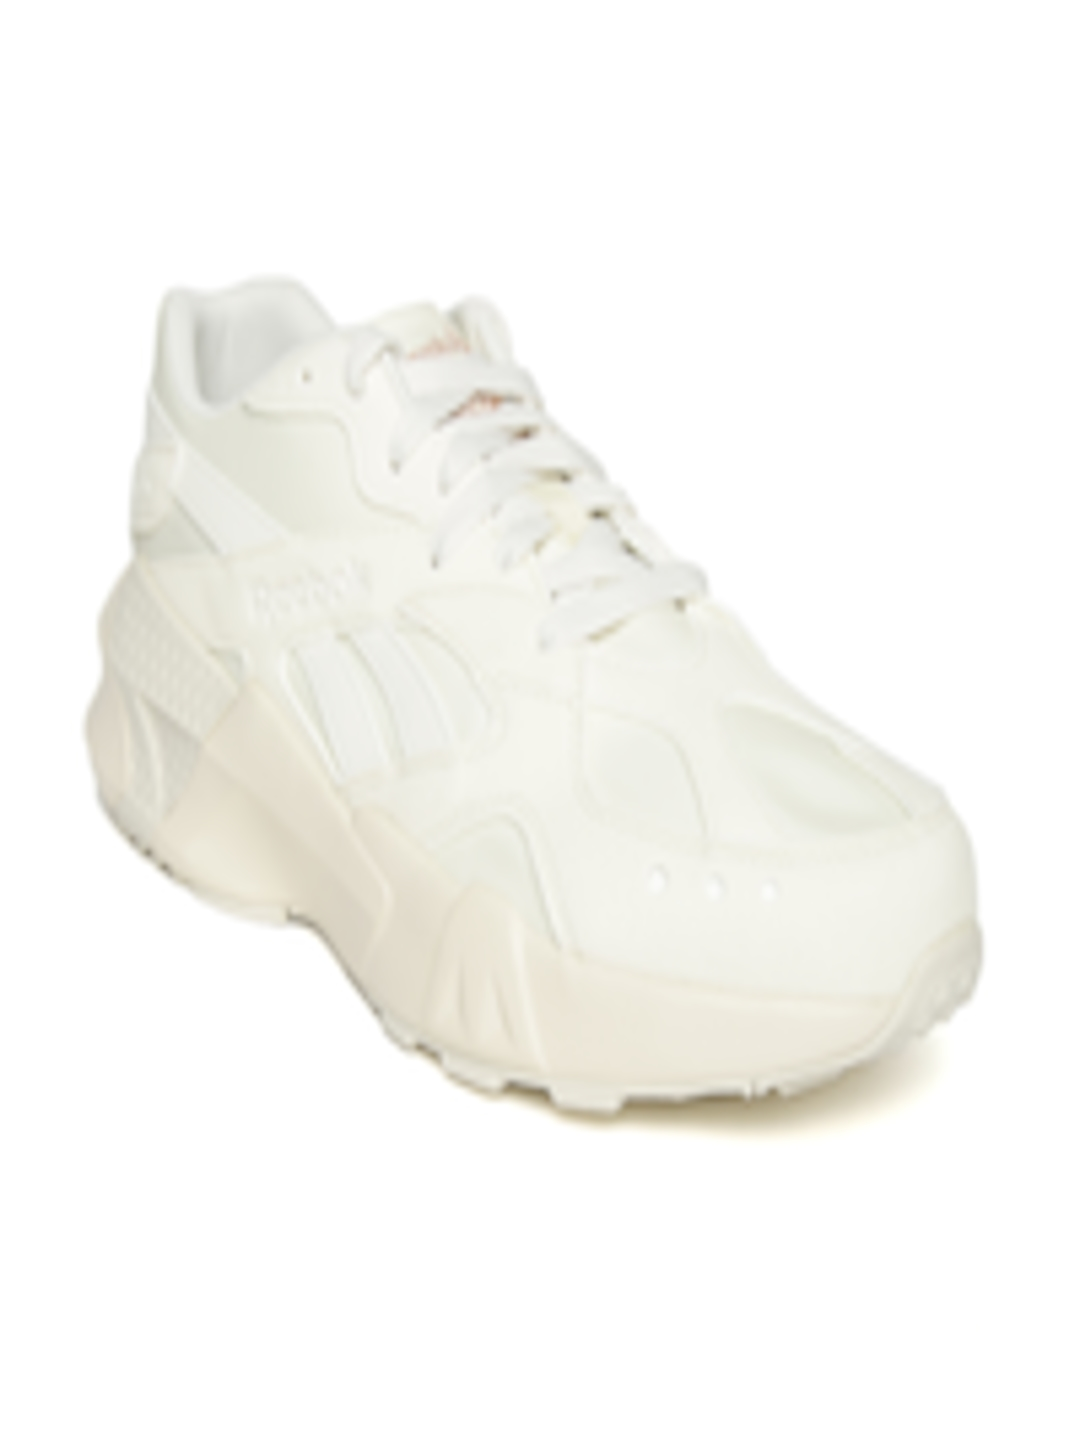 Reebok Mens Trainers Classic Aztrek Retro White Casual Formal Shoes New Size 7